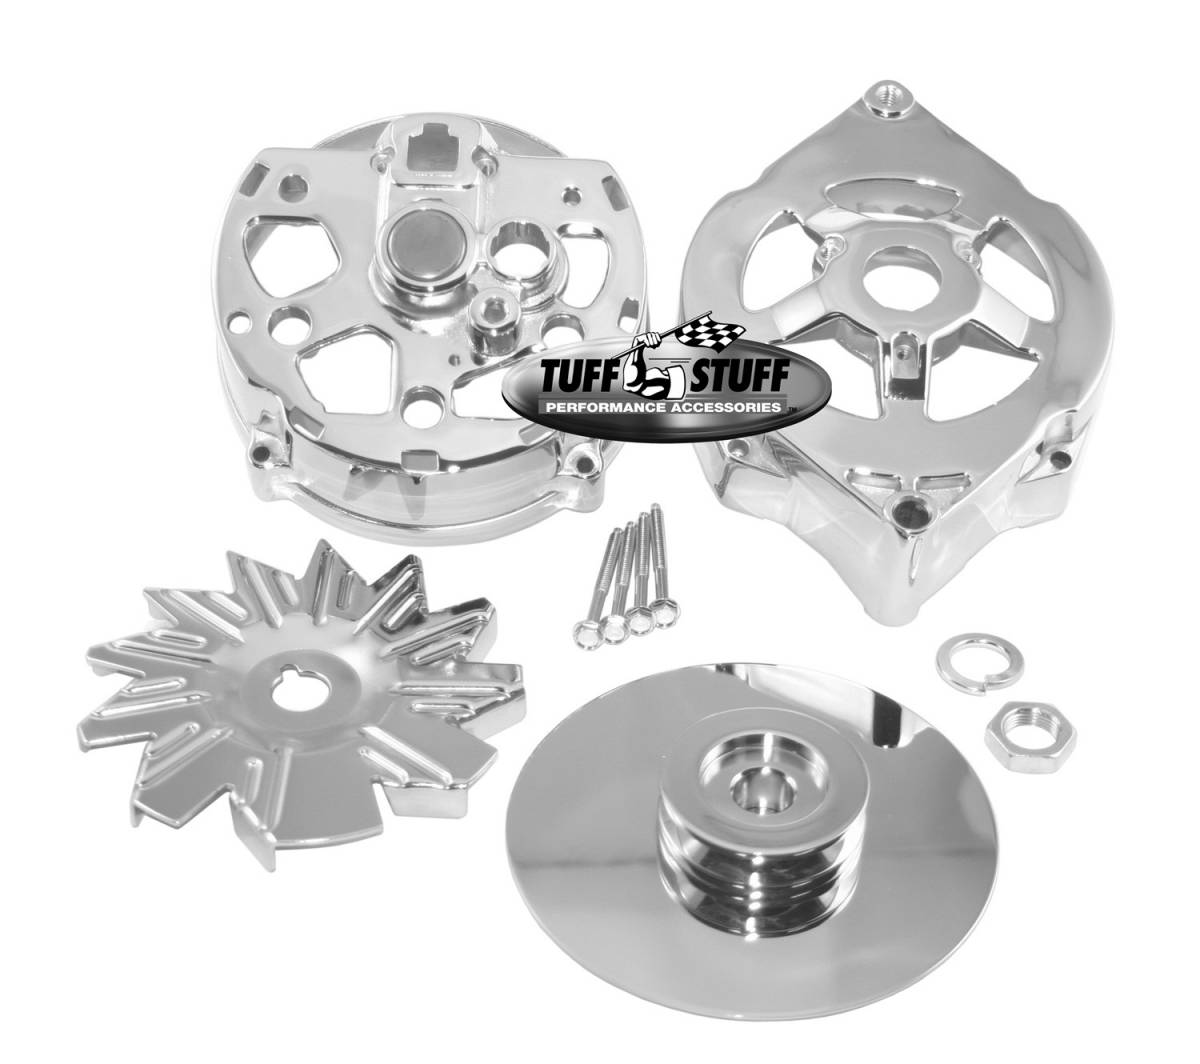 Tuff Stuff Performance - Alternator Case Kit Fits GM 10DN And Tuff Stuff Alternator PN[7102] Incl. Front And Rear Housings/Fan/Pulley/Nut/Lockwashers/Thru Bolts Chrome Plated 7500B